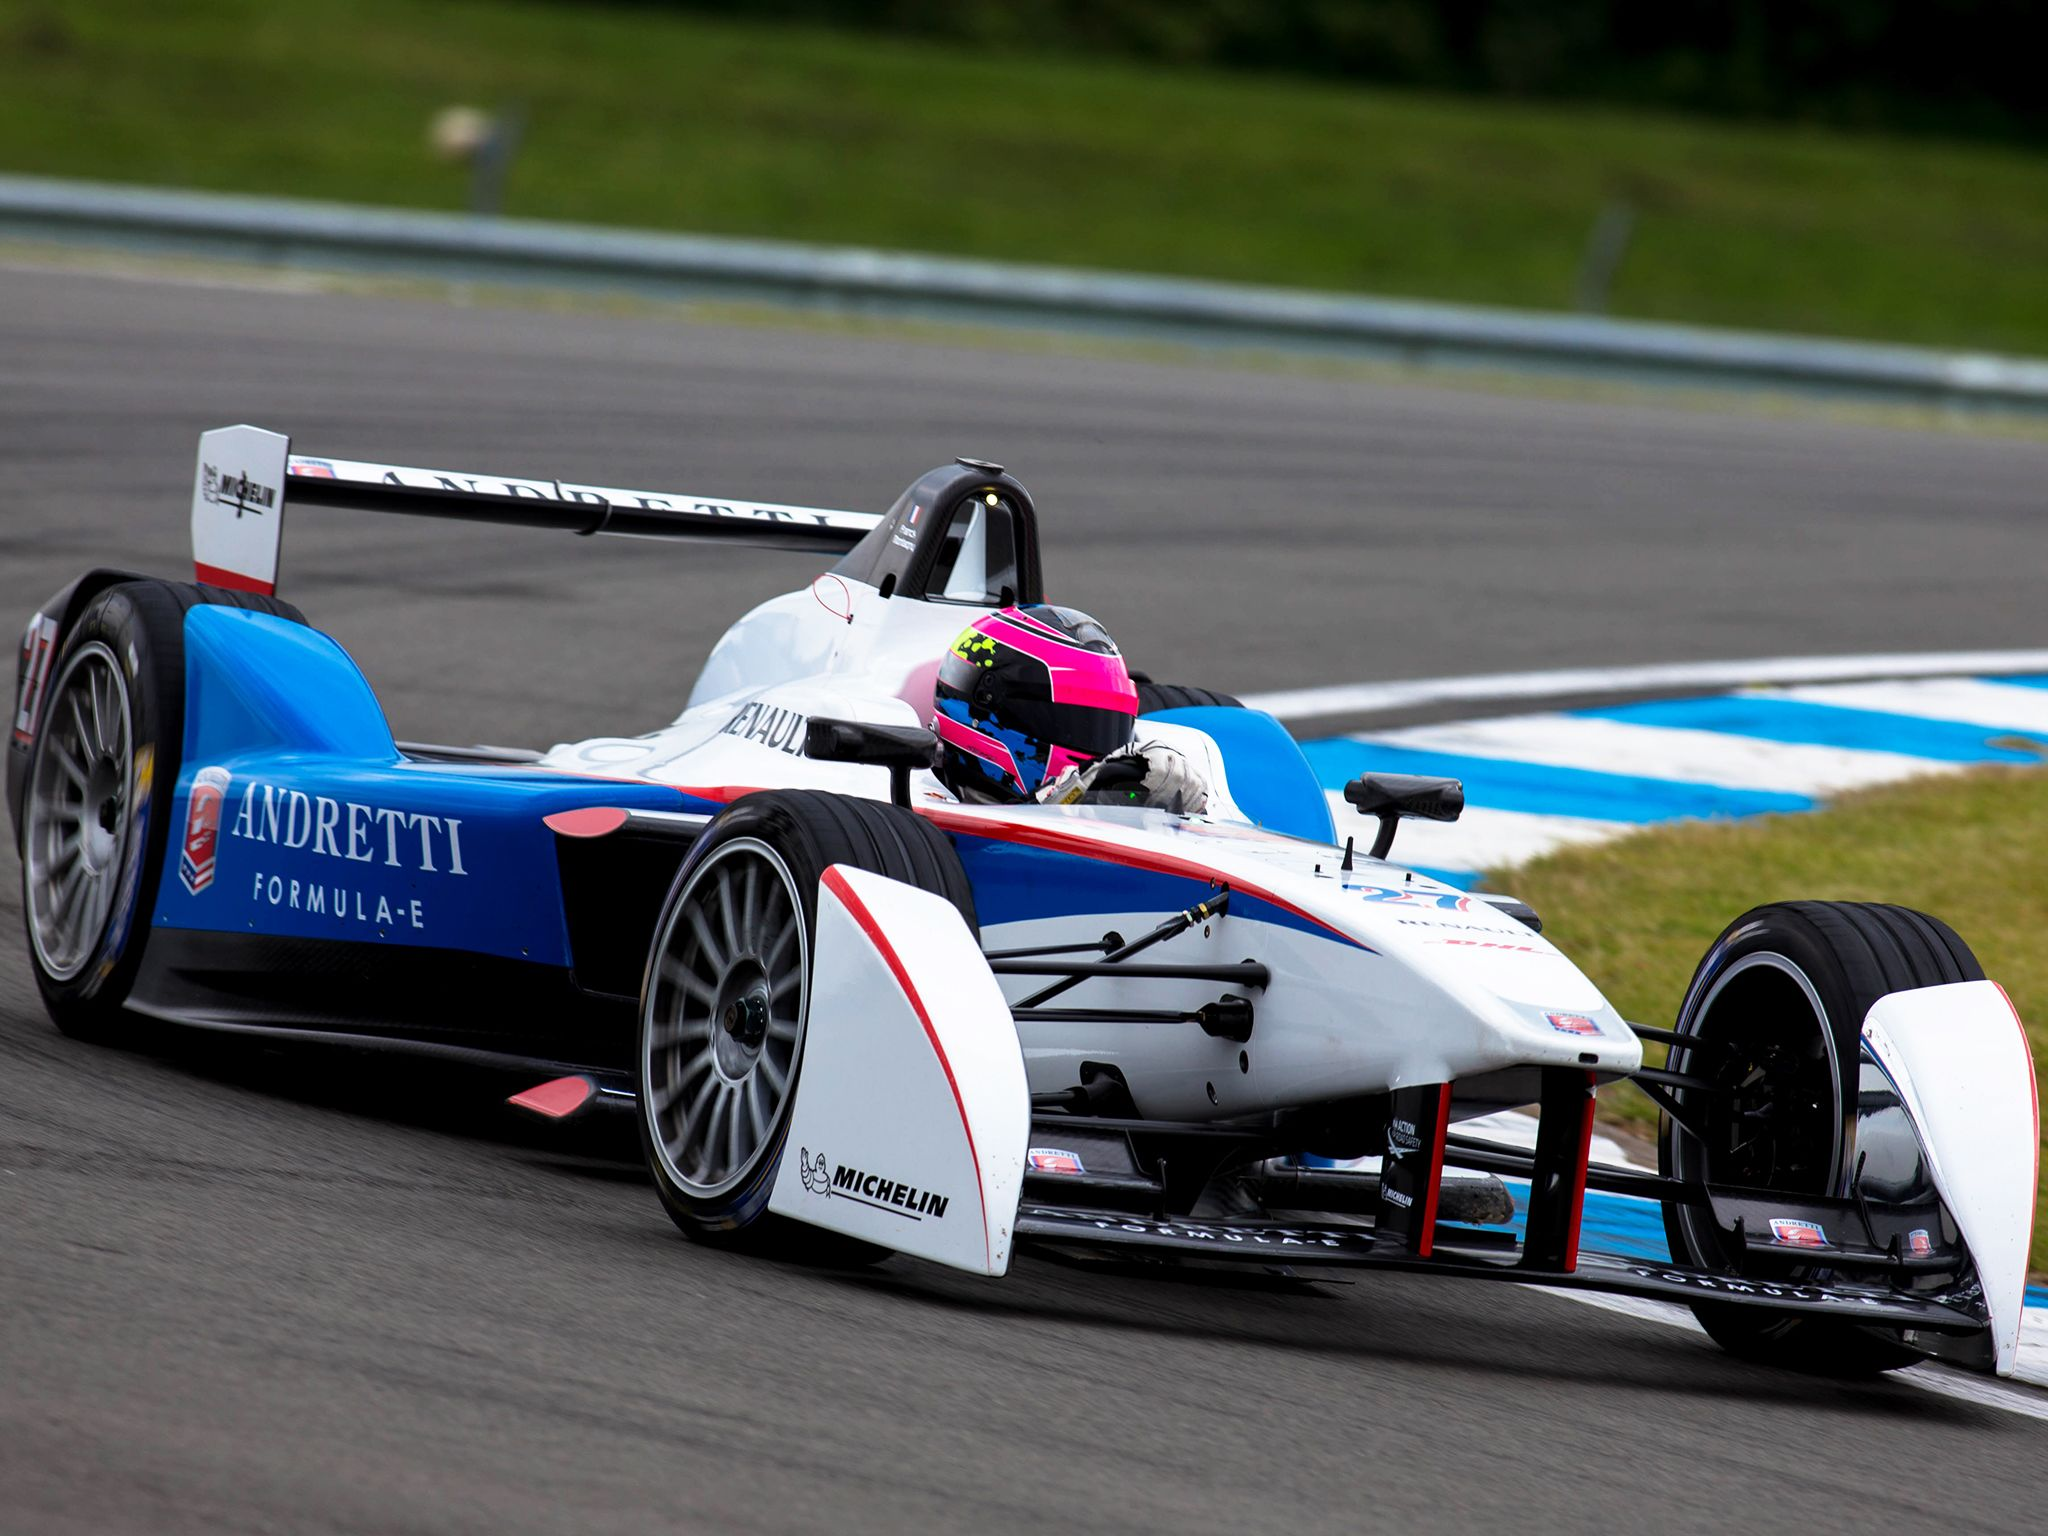 Donington, Royaume-Uni : Une Andretti sur le circuit. Cette image est issue de Formula E: Racing ... [Photo of the day - septembre 2014]